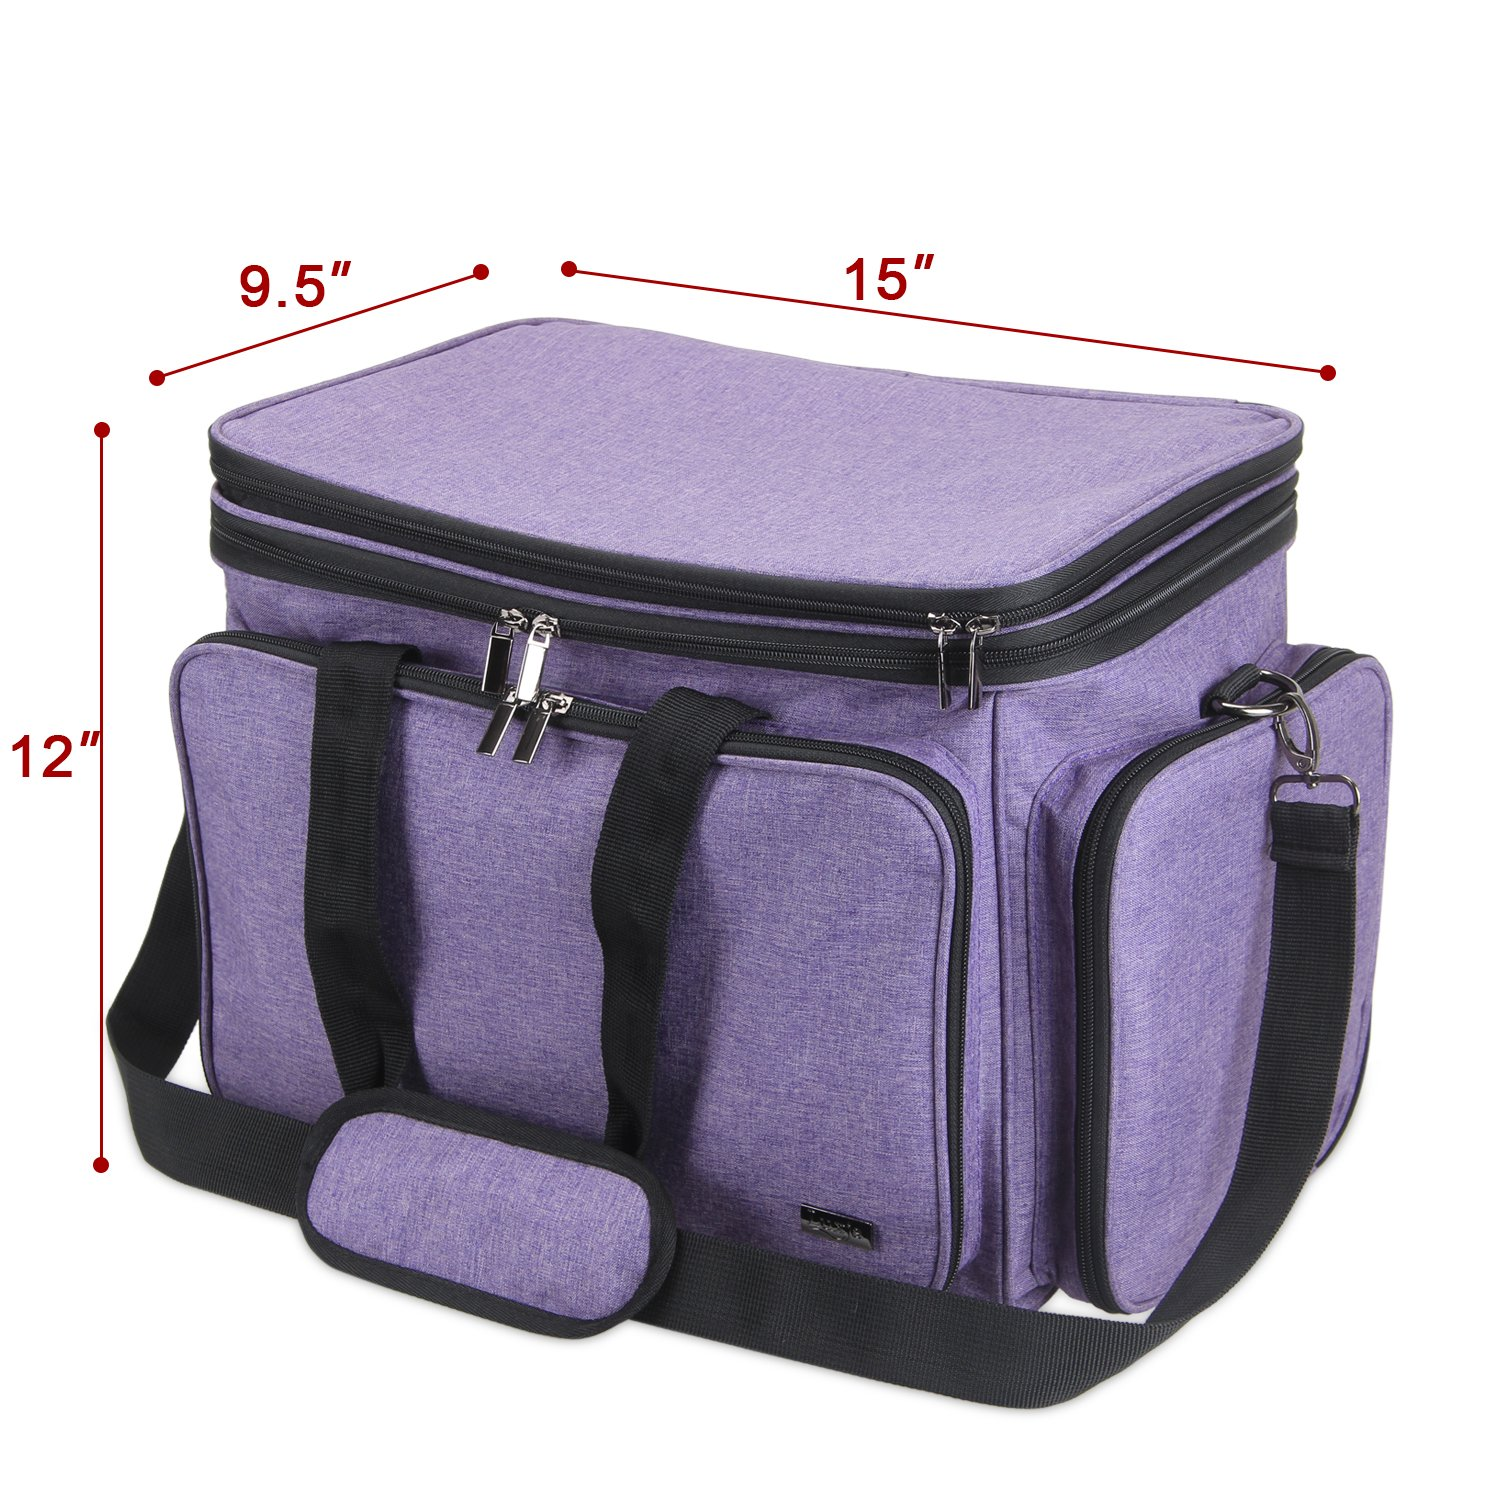 Luxja Knitting Bag, Yarn Bag with Cover and Shoulder Strap, Yarn Tote Bag for Carrying Projects, Knitting Needles (up to 14''), Circular Needles, Crochet Hooks and Other Accessories, Purple by LUXJA (Image #7)